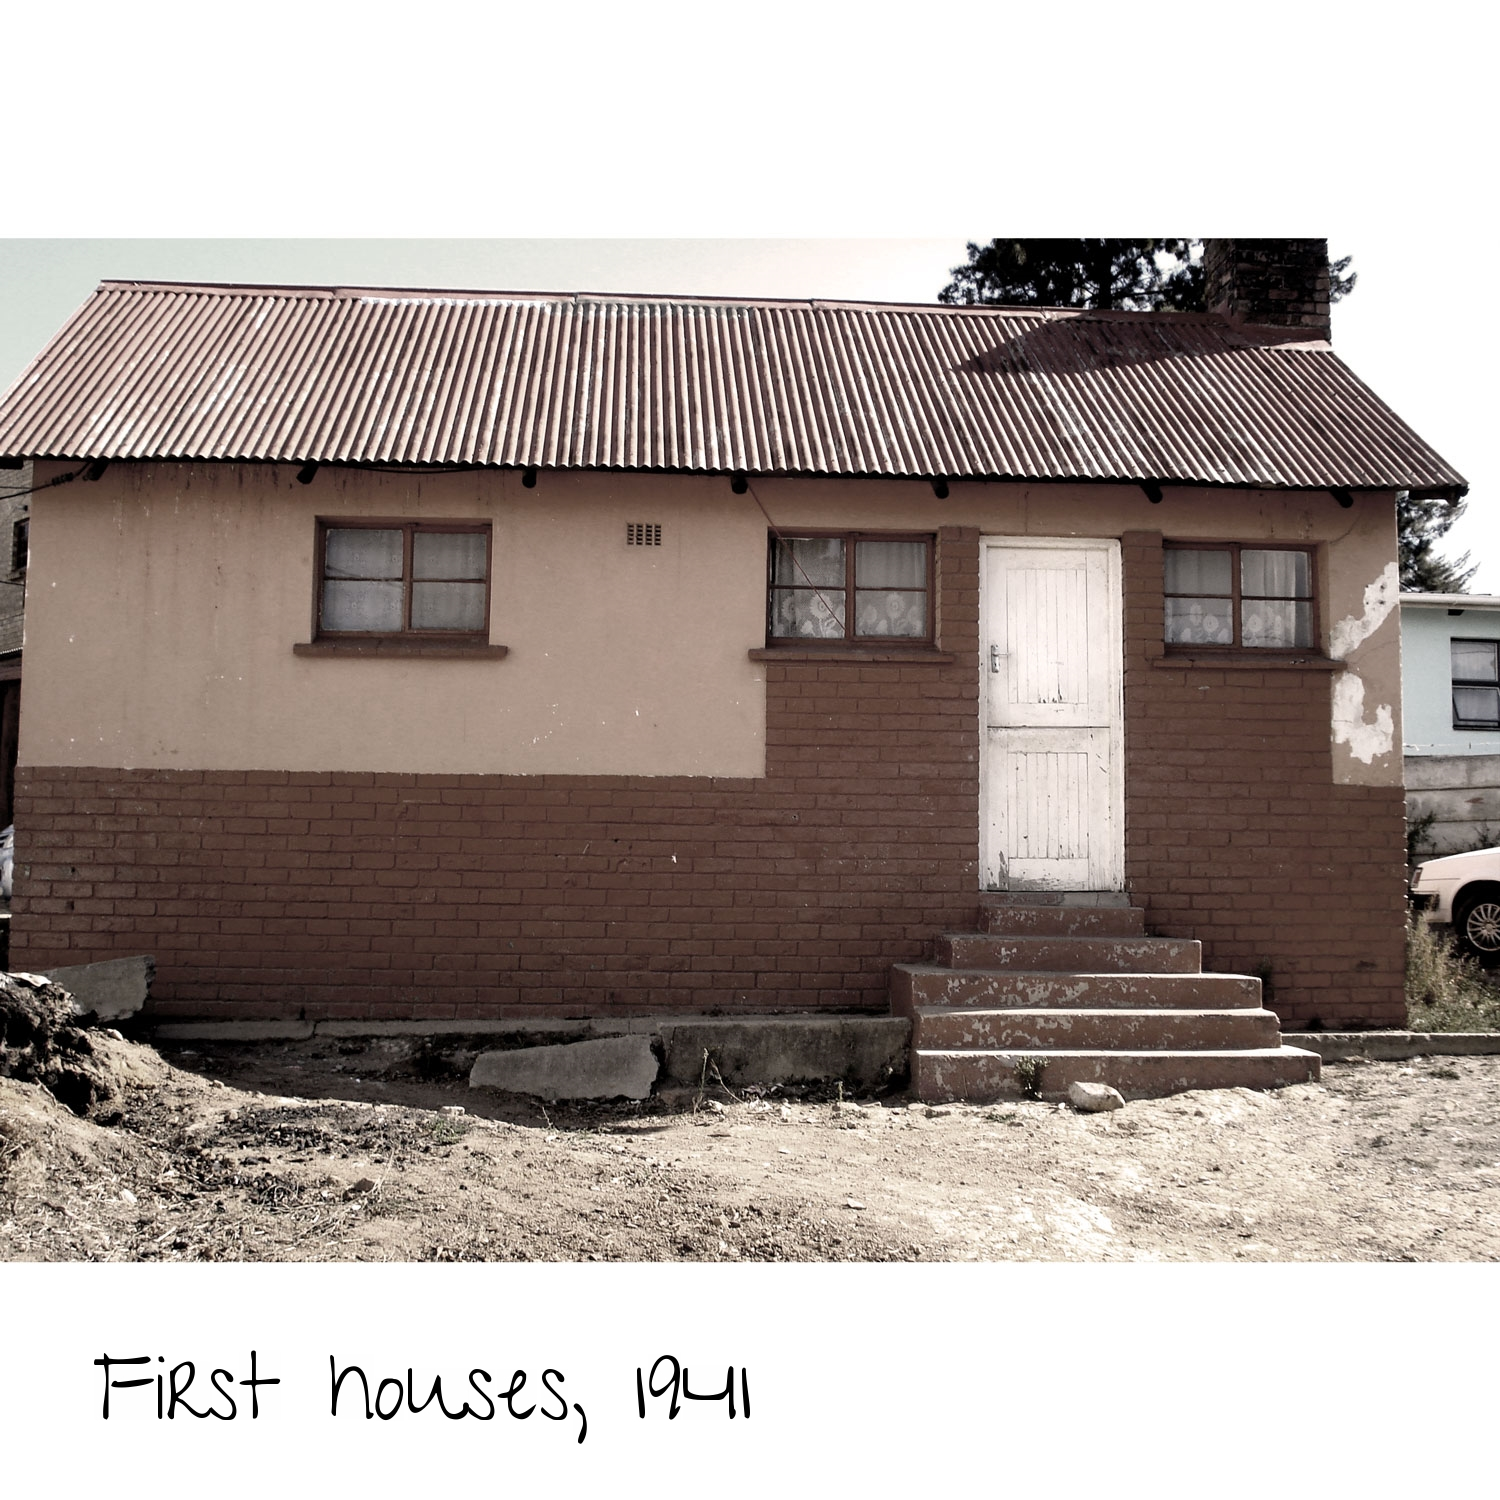 FirstHouse1.jpg